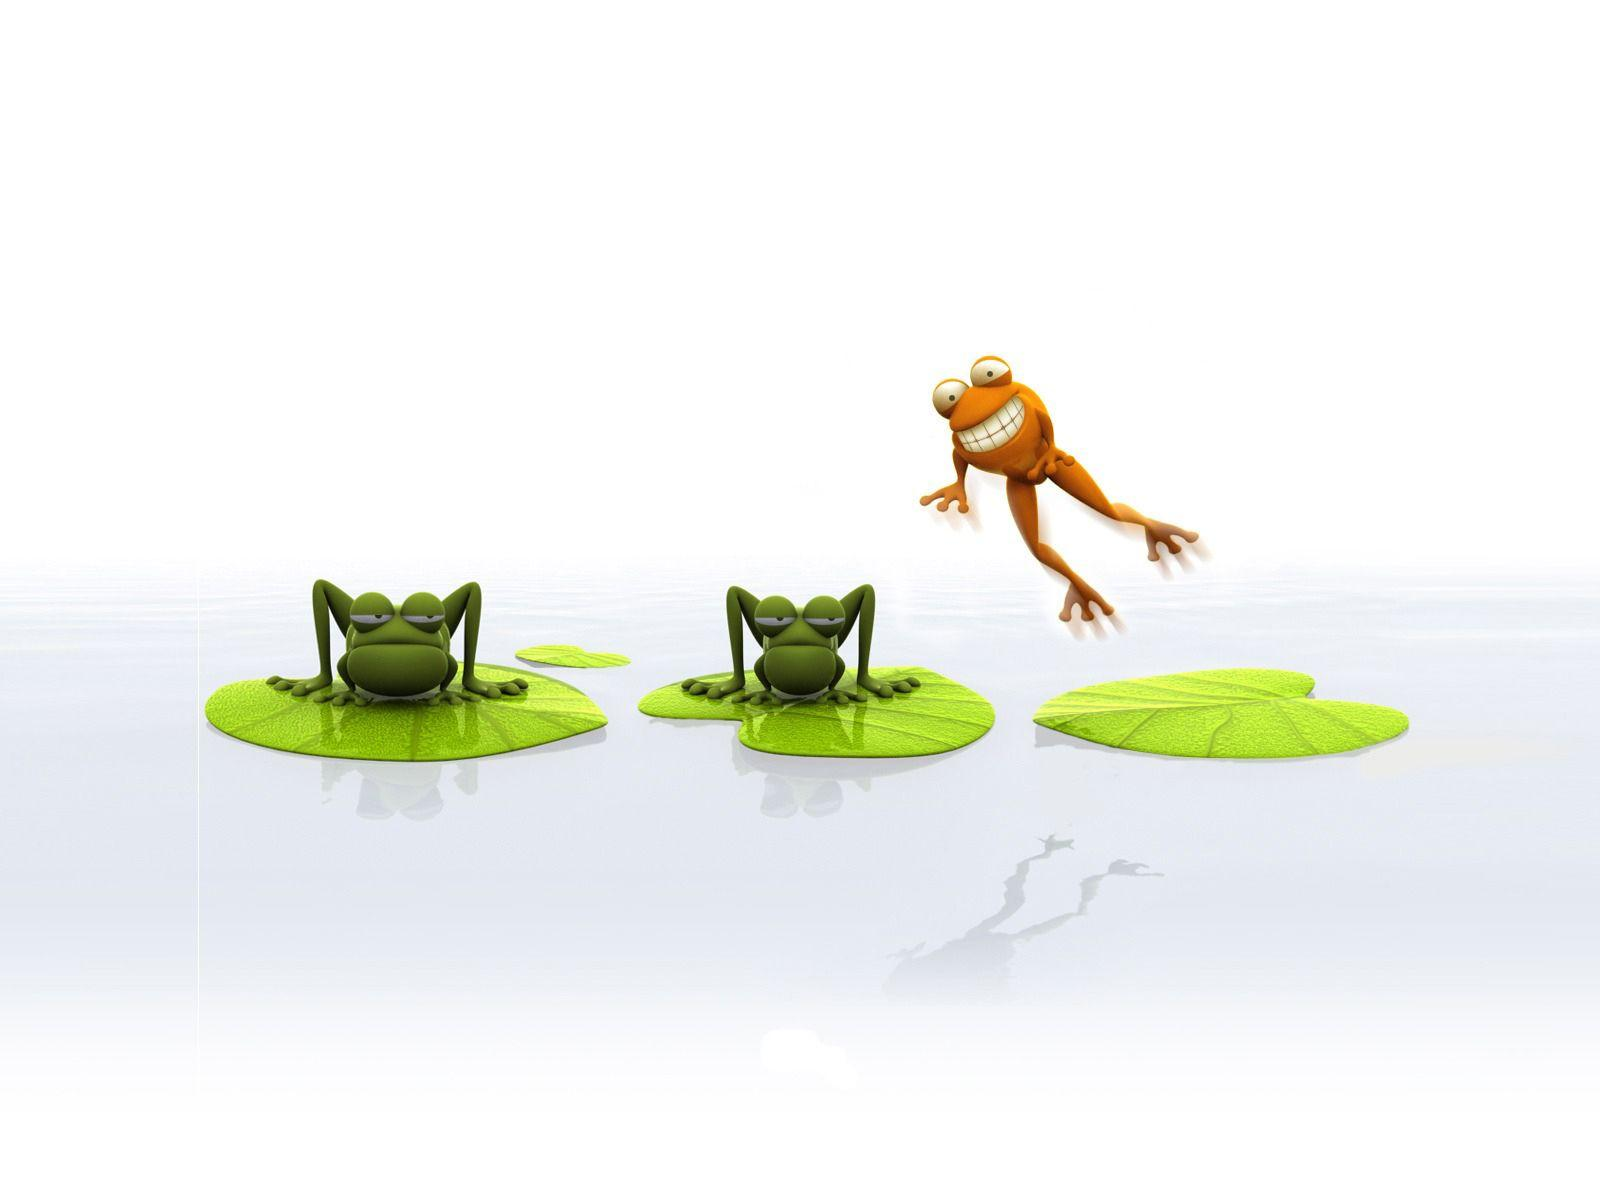 The cartoon frog creativity Wallpapers Animal desktop backgrounds